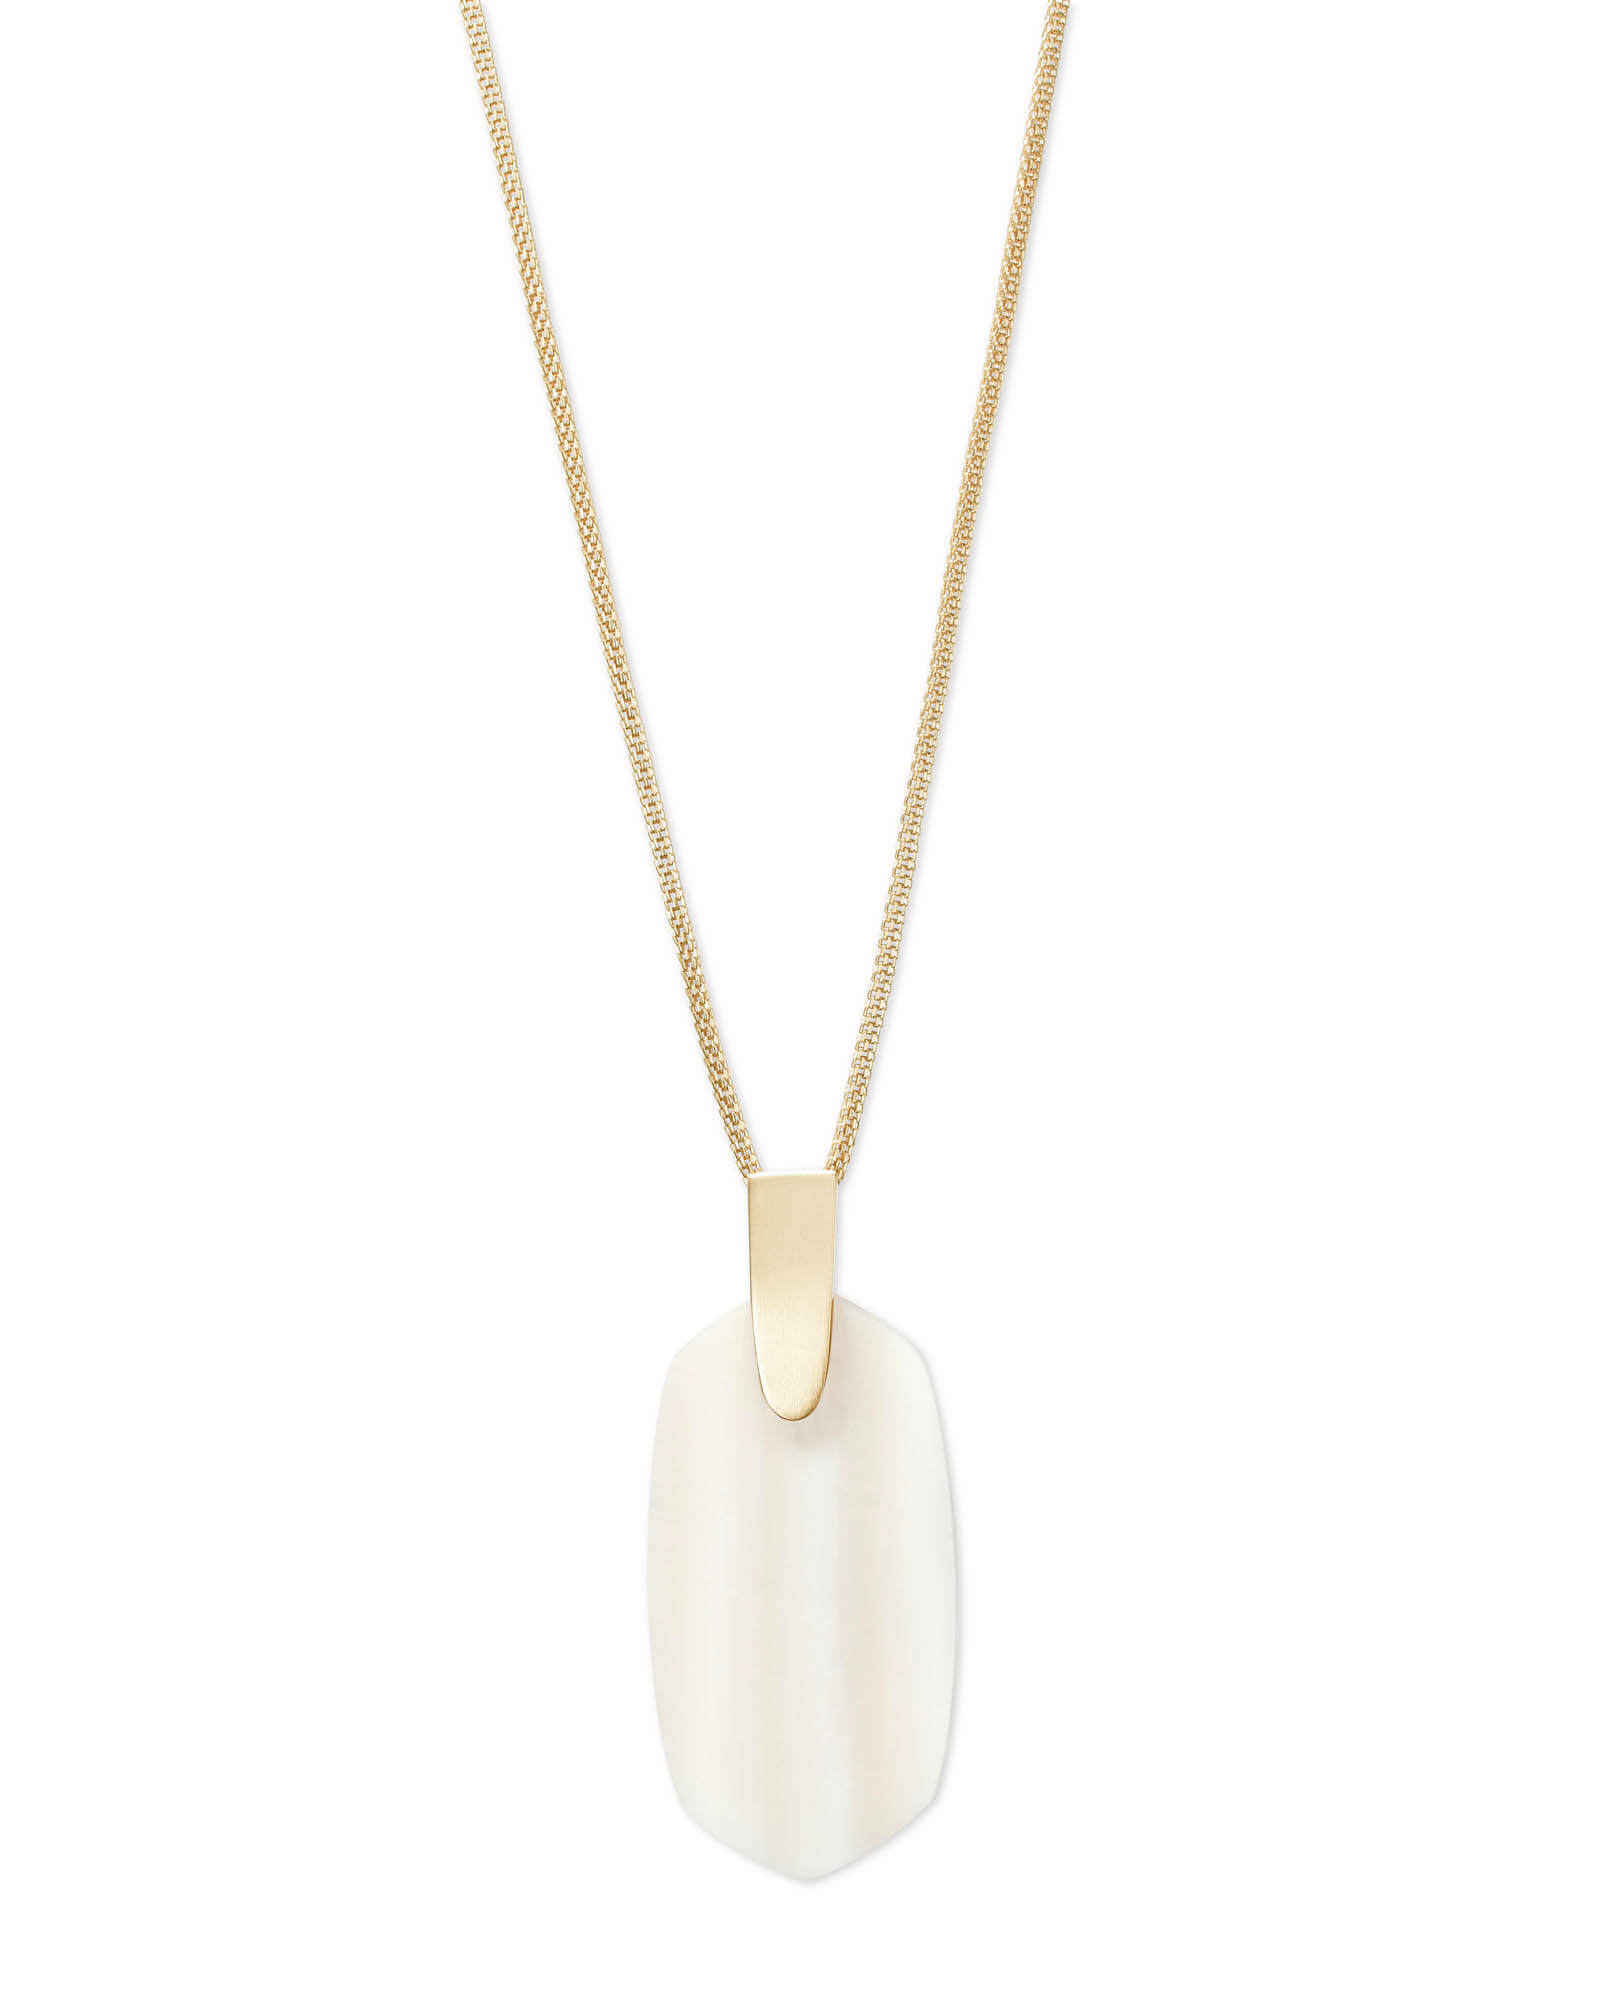 Inez Gold Long Pendant Necklace in White Pearl